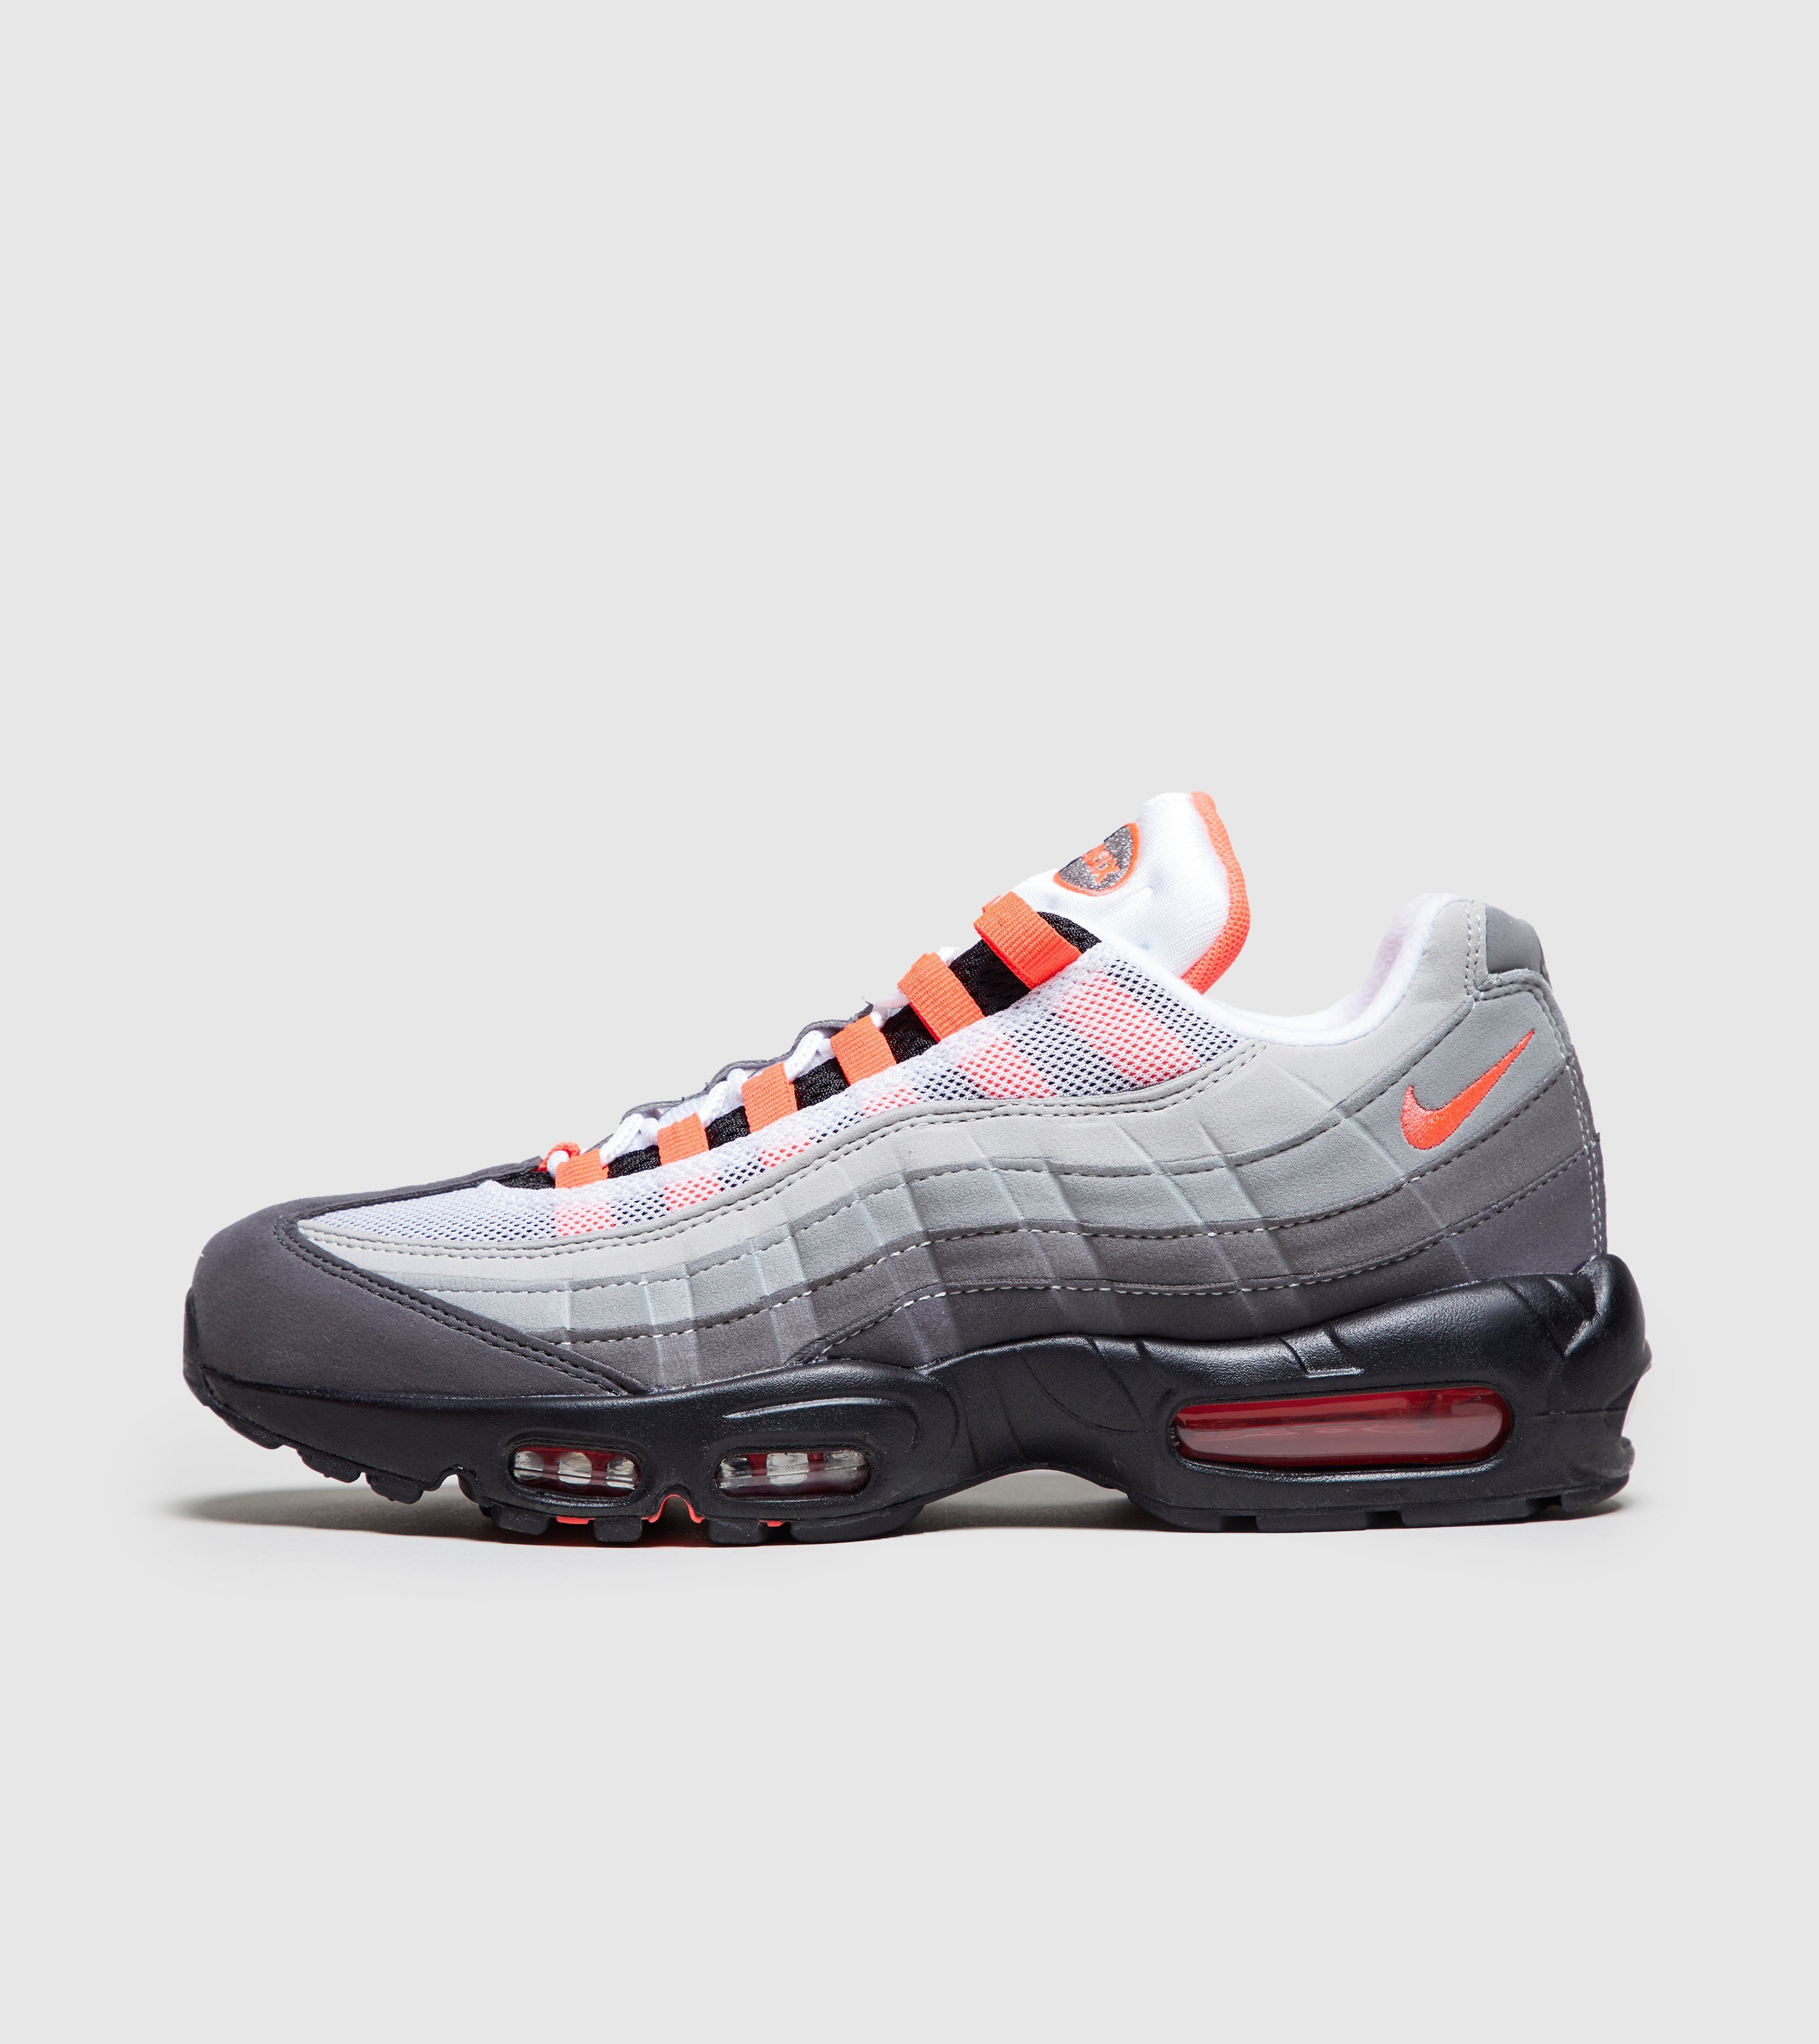 info for 0f804 06a85 coupon code for nike air max 95 og 57155 a503d